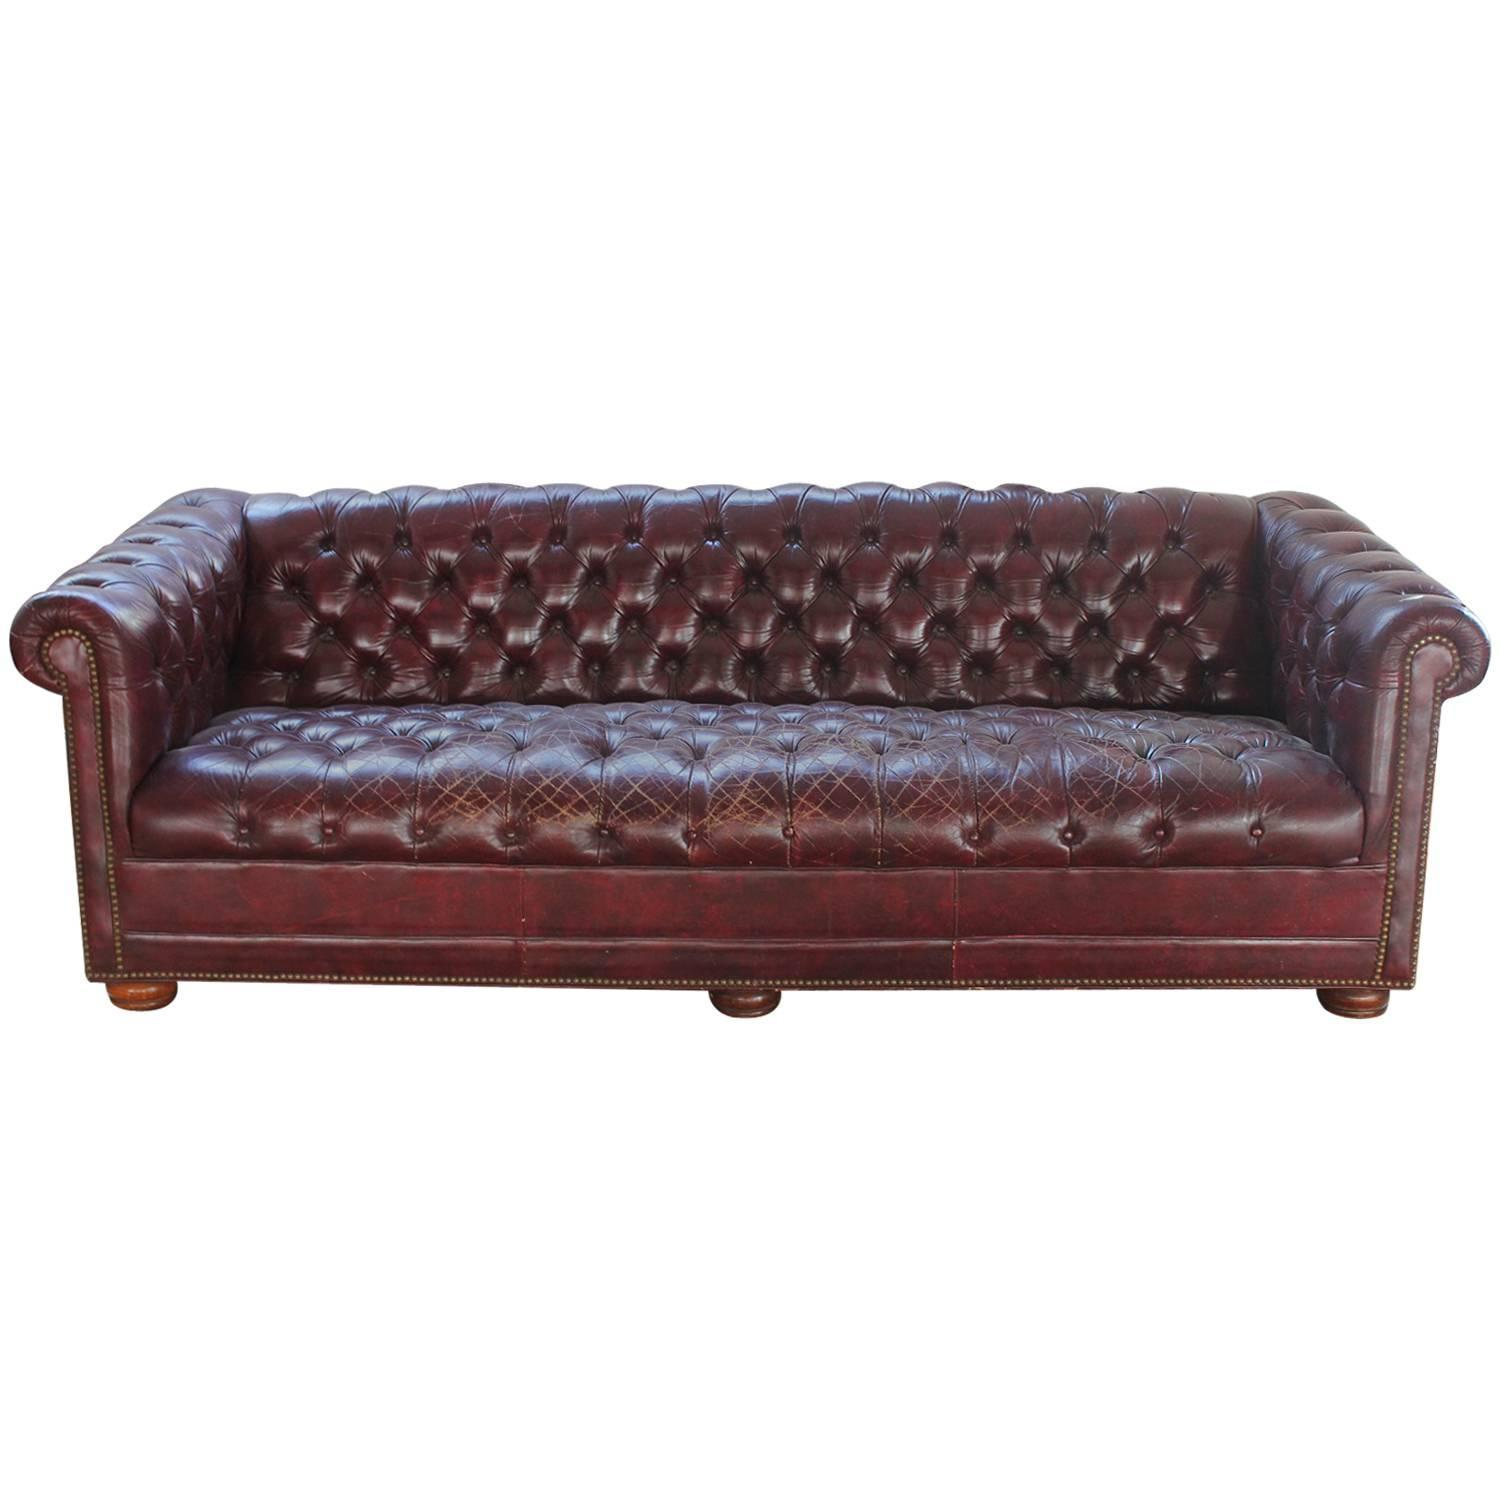 Vintage distressed burgundy leather chesterfield sofa for sale at 1stdibs Burgundy leather loveseat